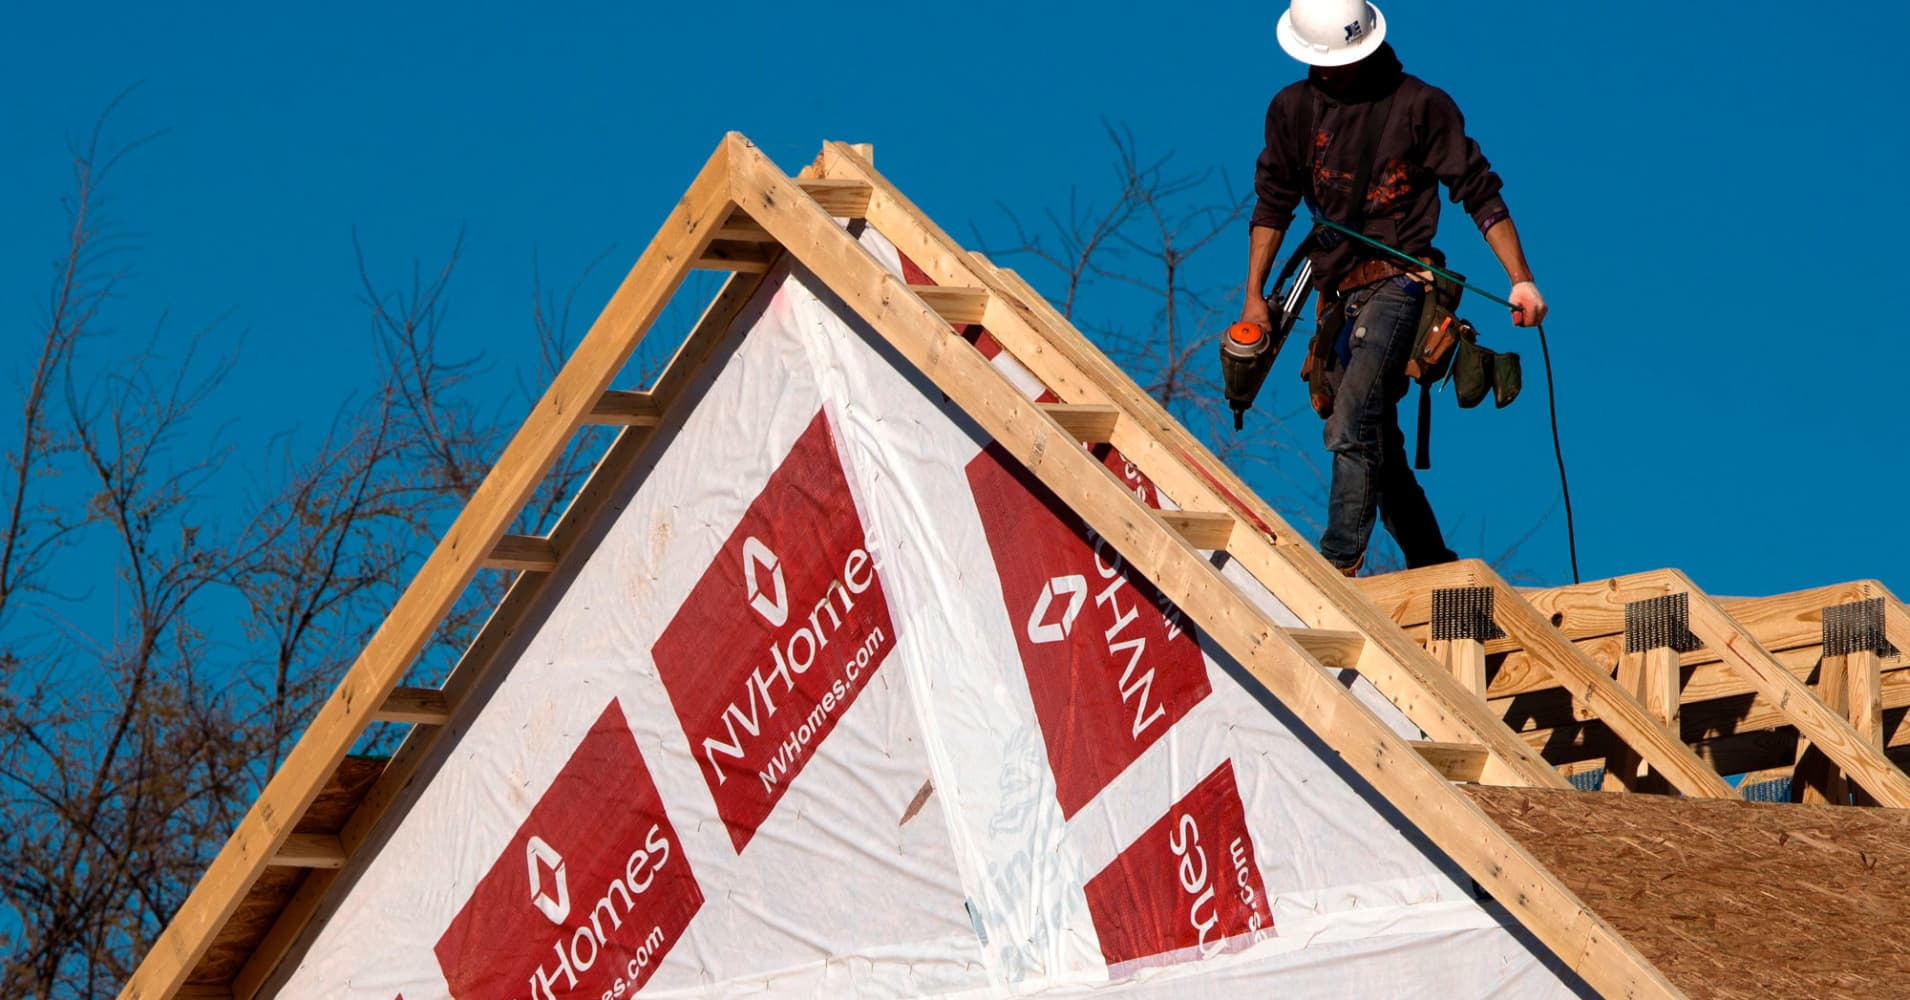 Hot housing stocks are cooling off, and there could be more trouble ahead